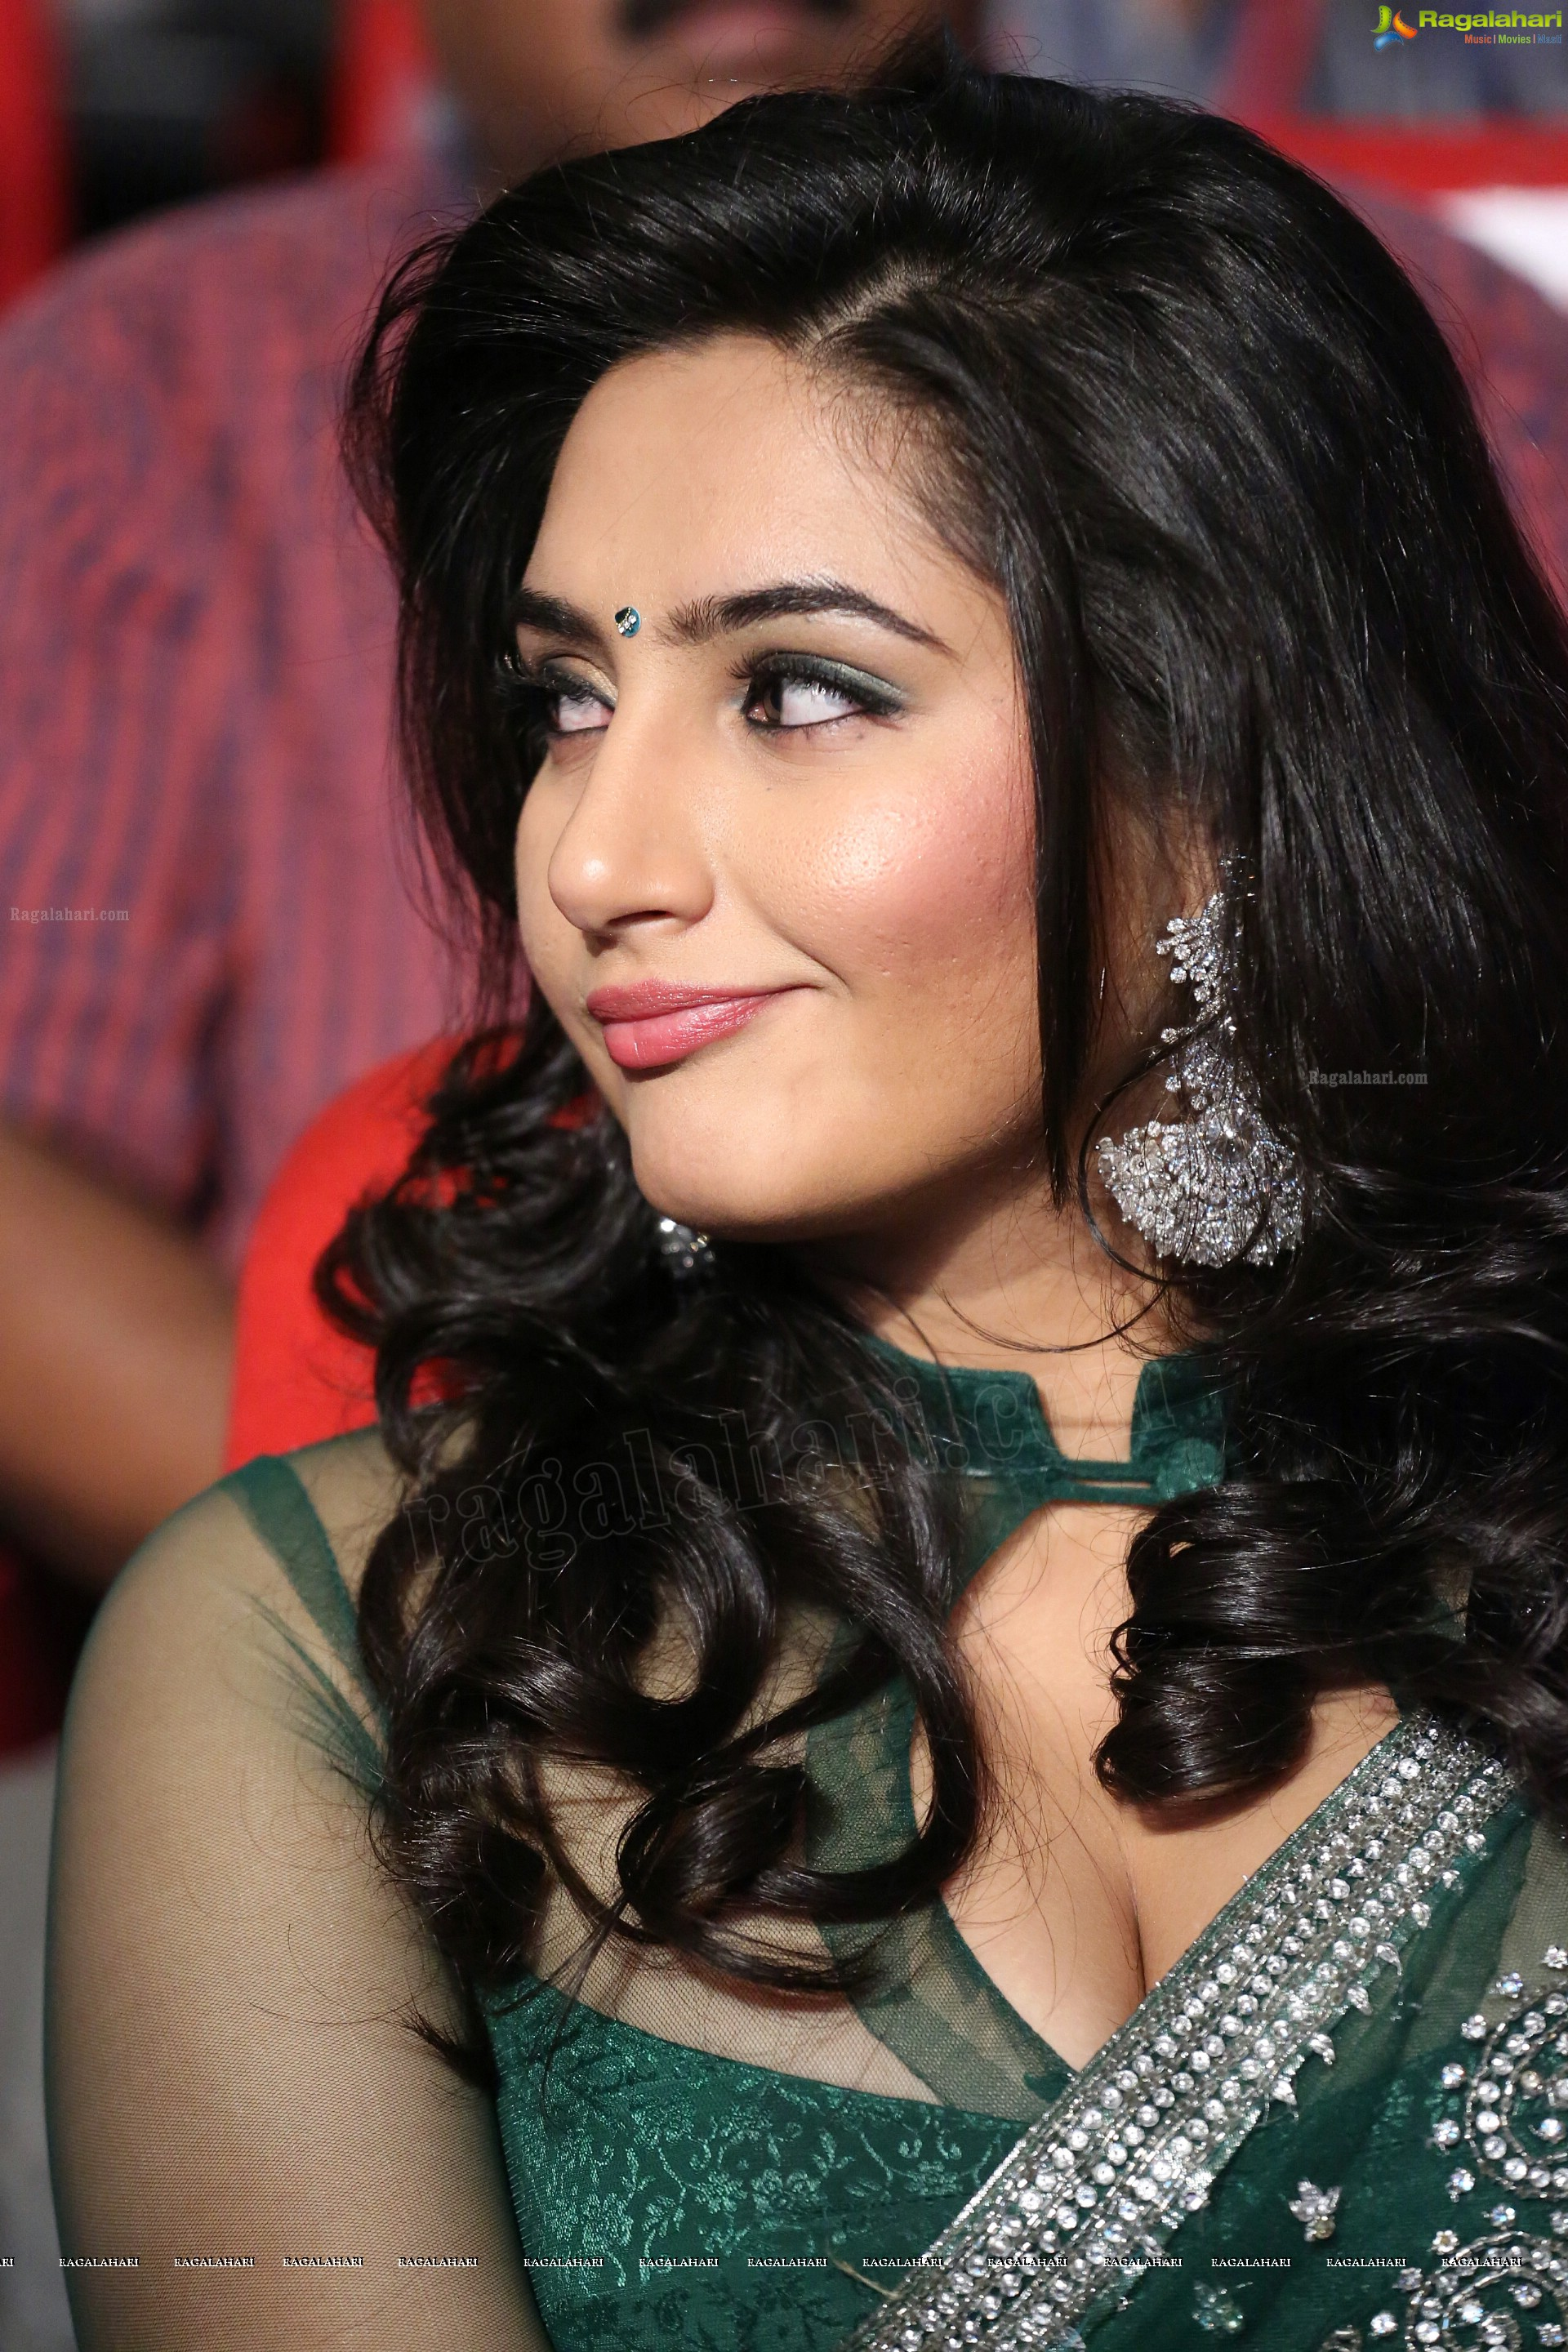 Watch Ragini Dwivedi video